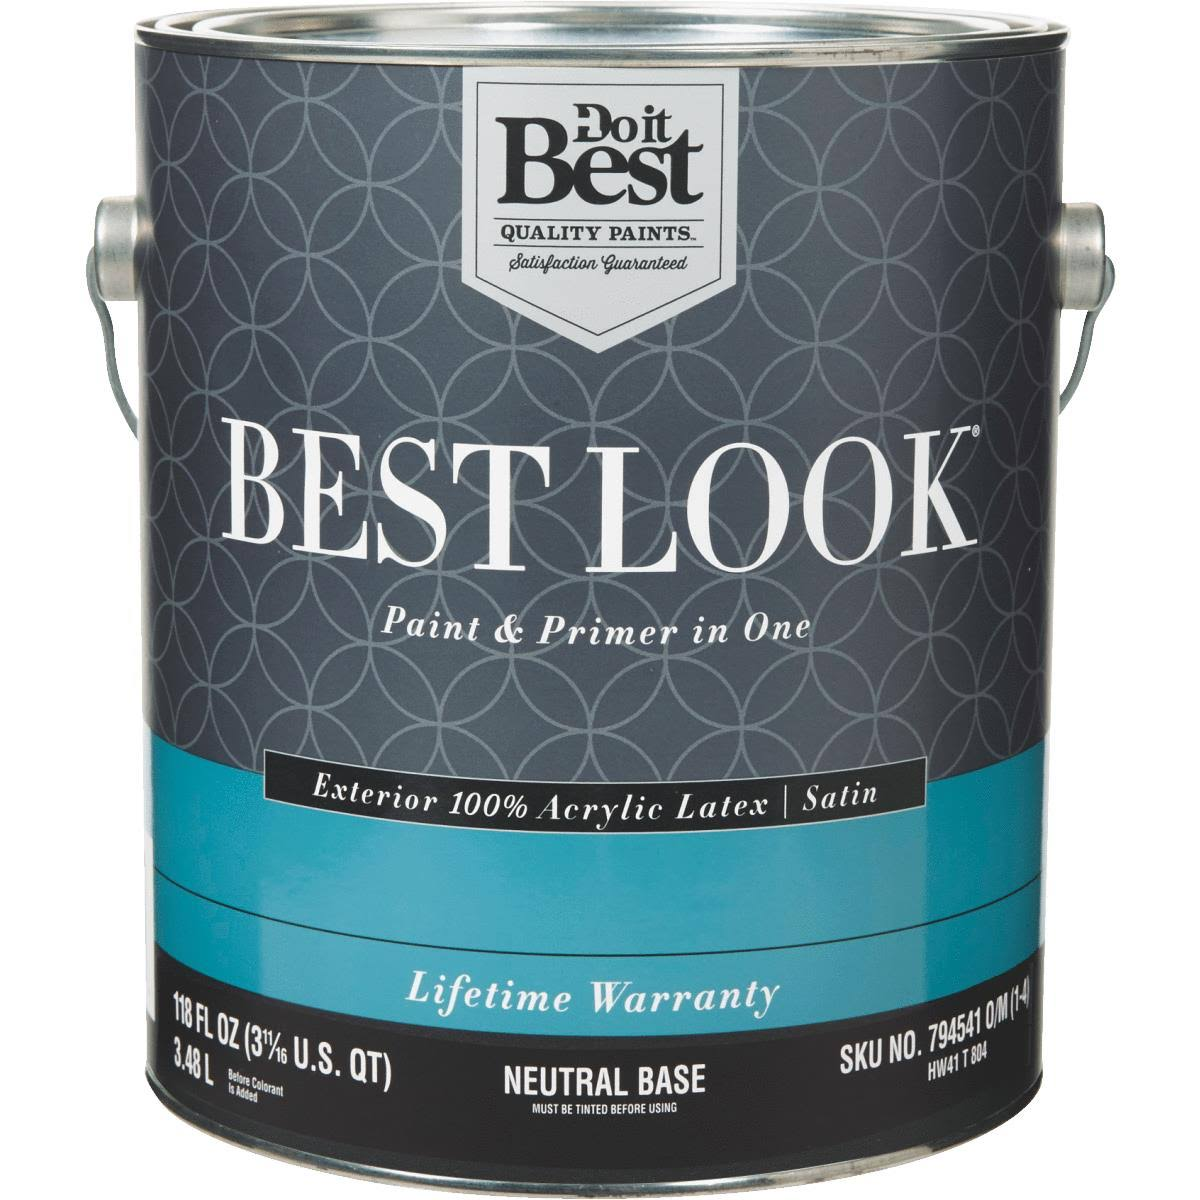 Best Look 100% Acrylic Latex Paint & Primer in One Satin Exterior House Paint